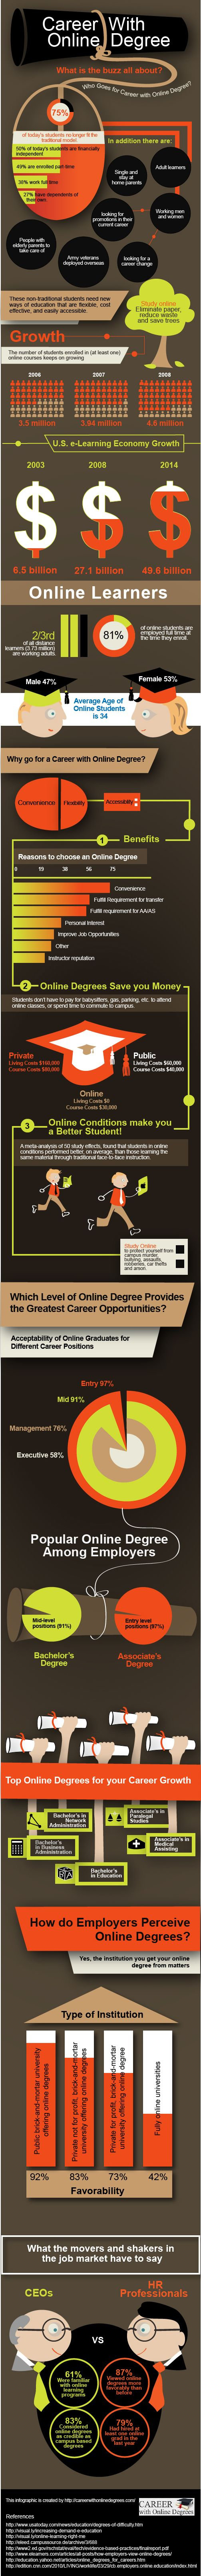 Online School looked at as valuable or not?